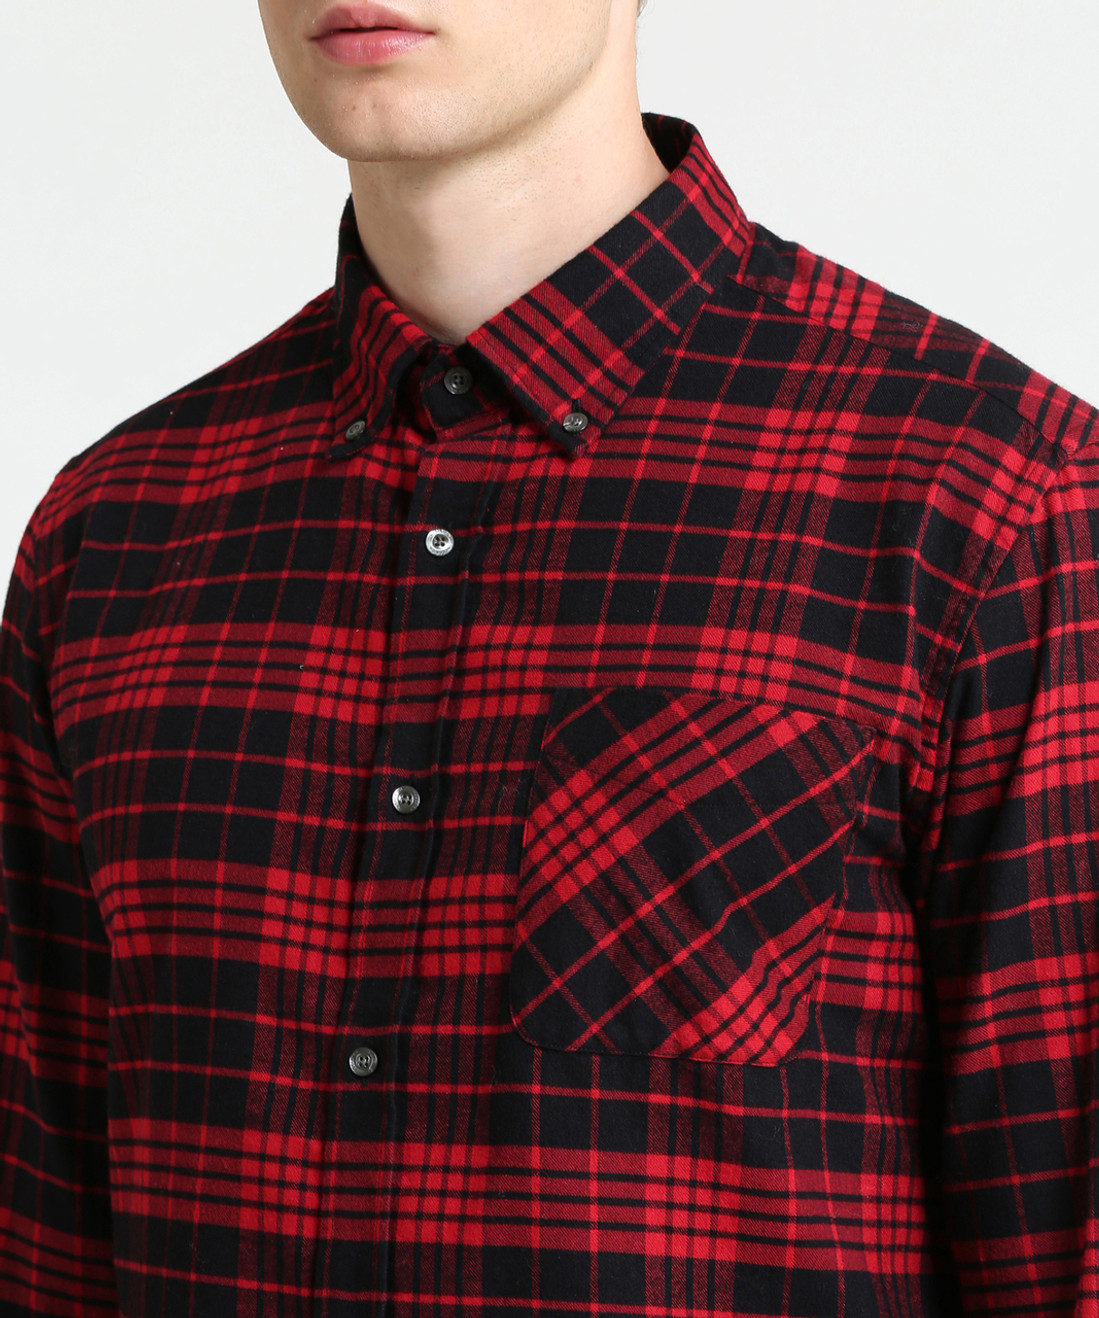 Men's Heritage Check Flannel Shirt - John Rich & Bros.